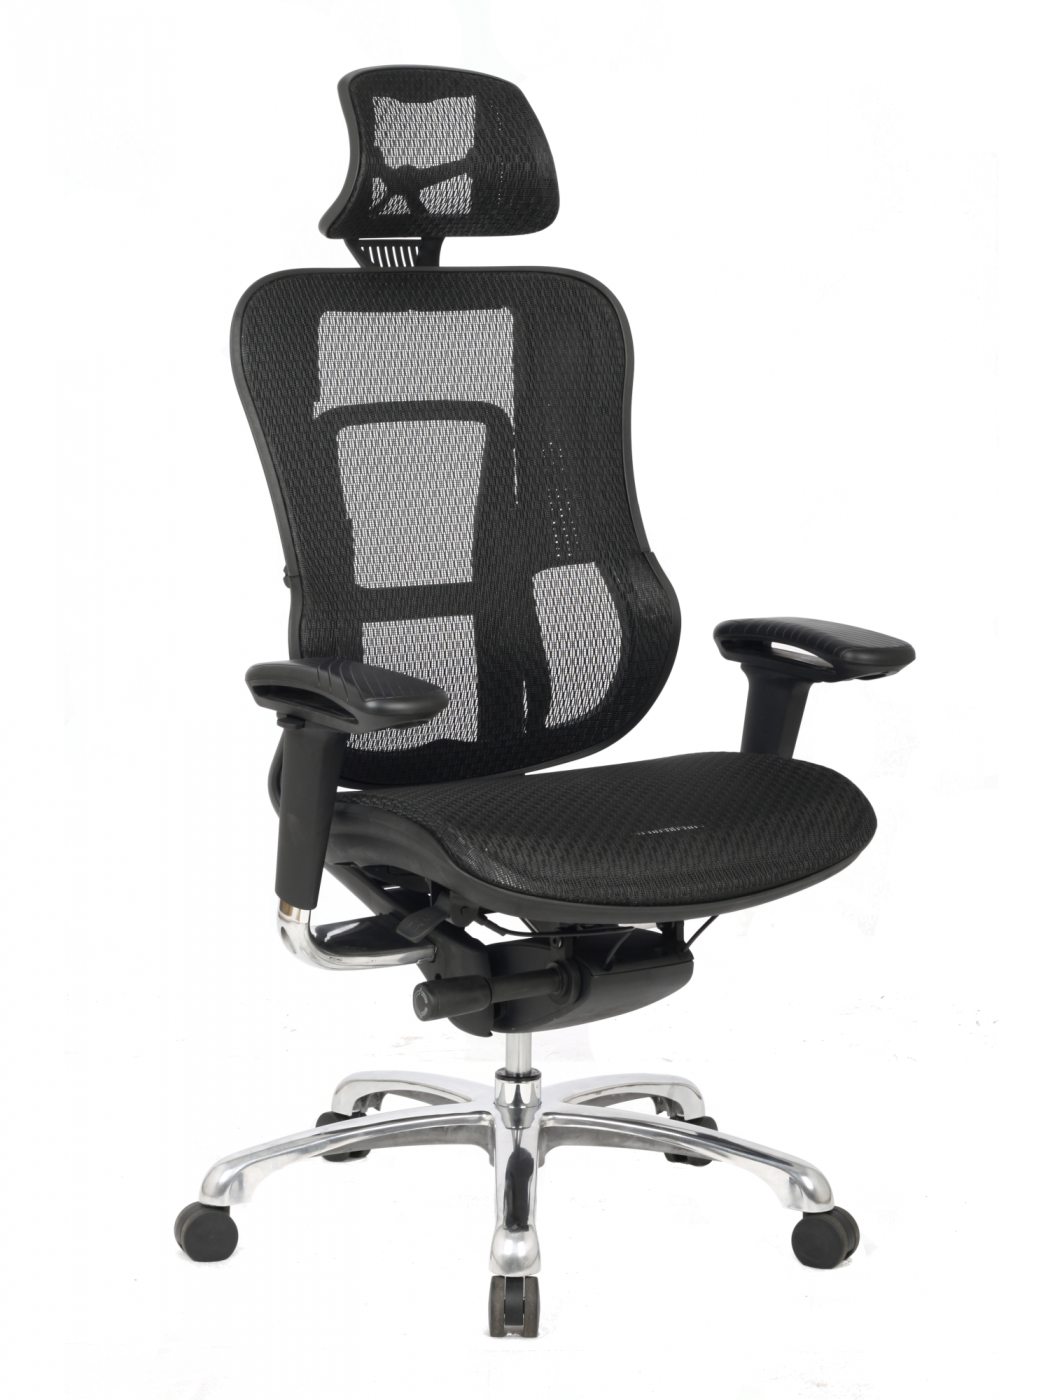 aztec executive office chair bcmh222 enlarged view